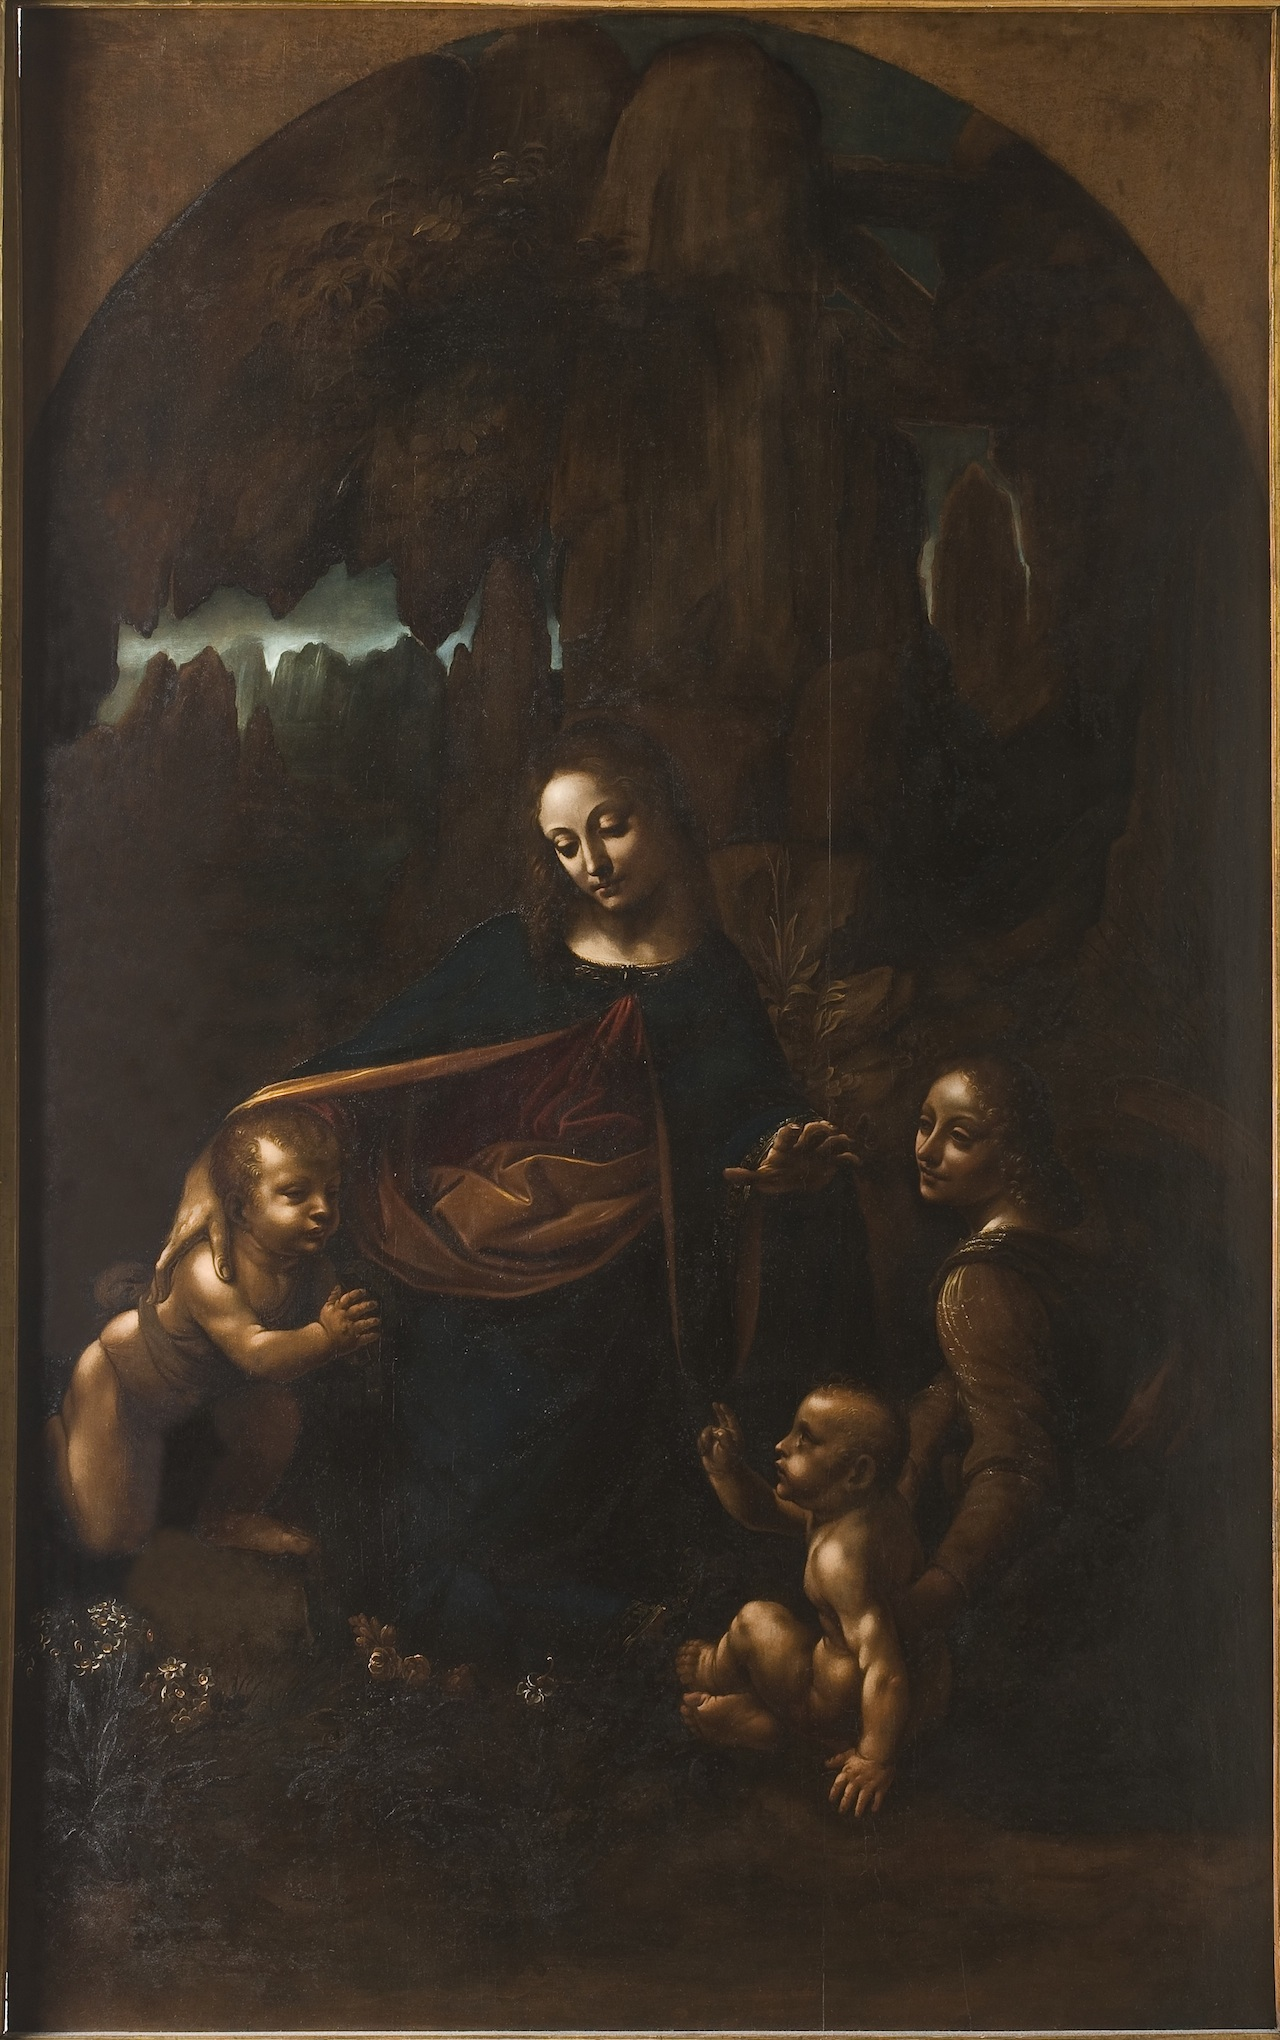 'Virgin of the Rocks' by Andrea Bianchi (Circa 1615-18) (click to enlarge)